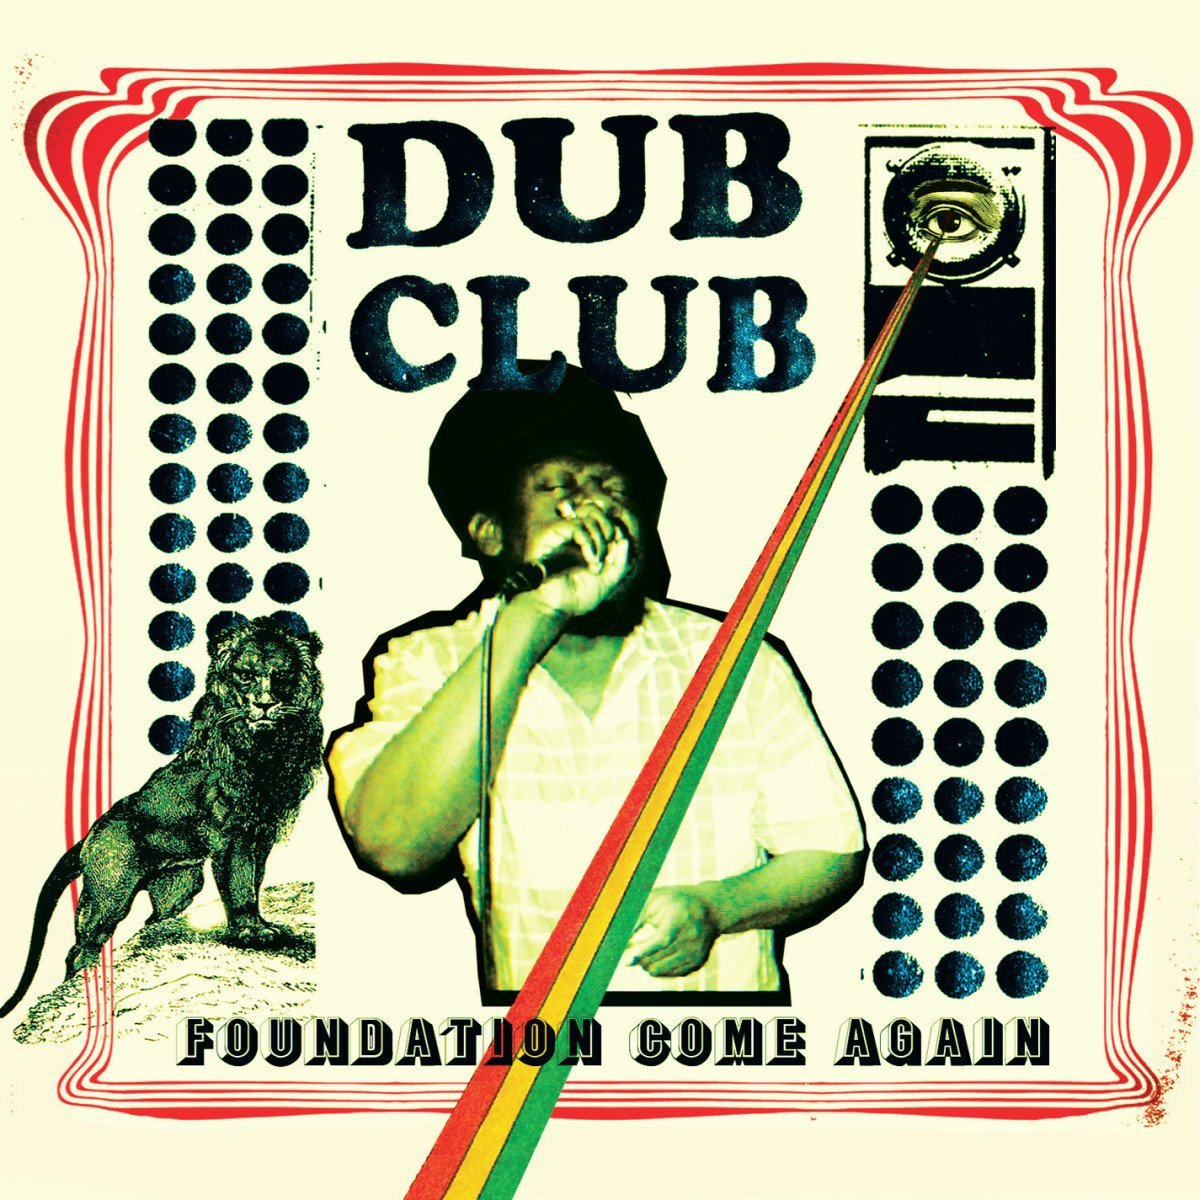 Image of Foundation Come Again / Dub Club